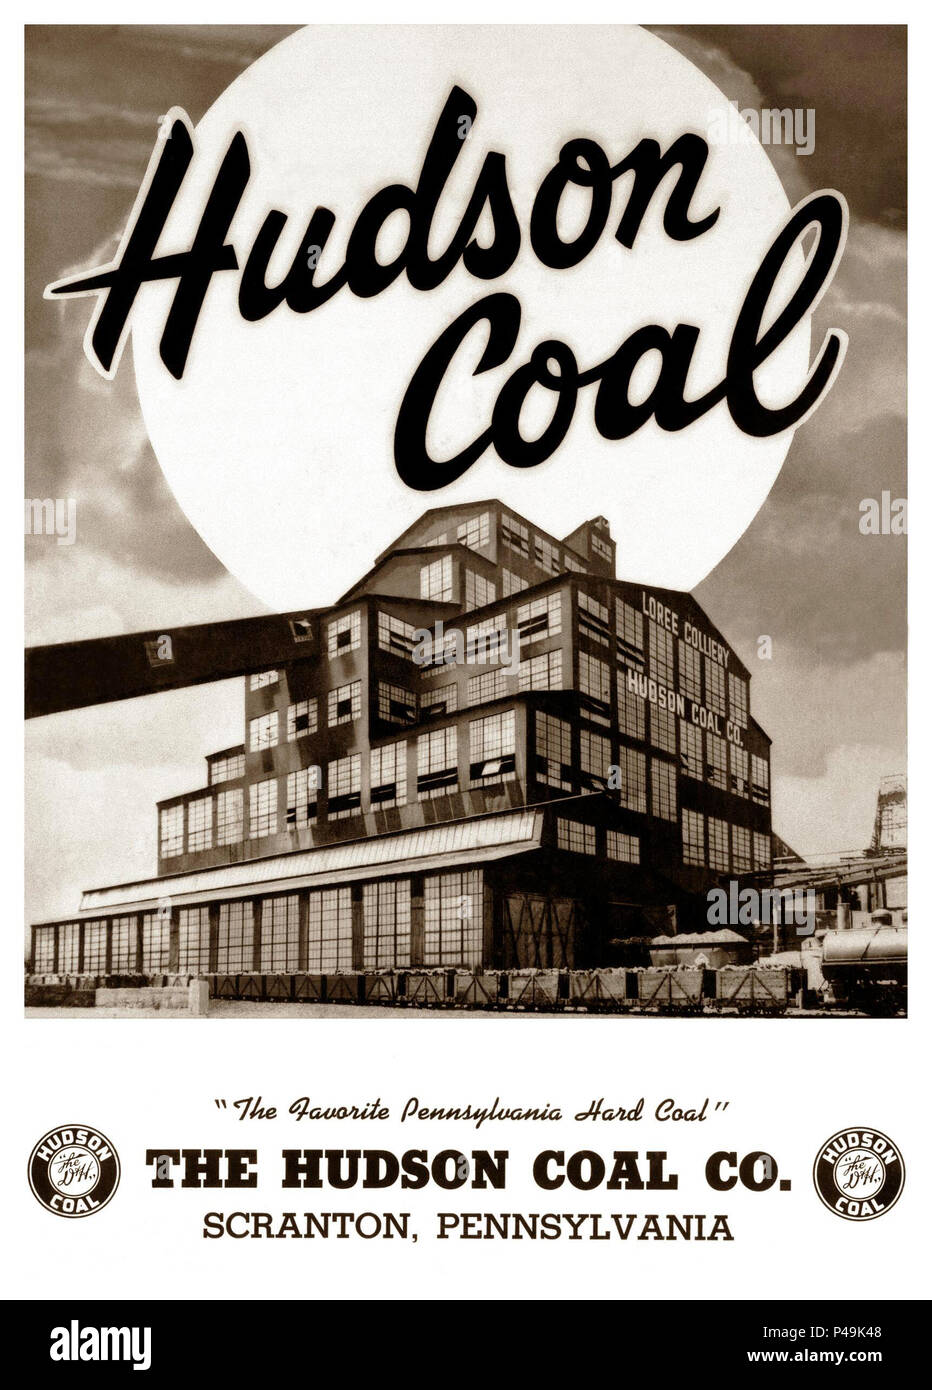 This is a porcelain photo advertising sign of the Loree Colliery Larksville Pennsylvania.The Hudson Coal Company incorporated in Pennsylvania in 1871 as a subsidiary of the Delaware and Hudson Canal Company. The Hudson Coal Company figured prominently in the anthracite coal industry through the late 19th and early 20th centuries.The coal breaker began operation on June 22, 1919,In 1921 the breaker produced 1,590,201 tons of anthracite and in 1926 there were just over 3,000 employees at the colliery.Production declined in the coming decades and the breaker closed in the 1960s. Stock Photo